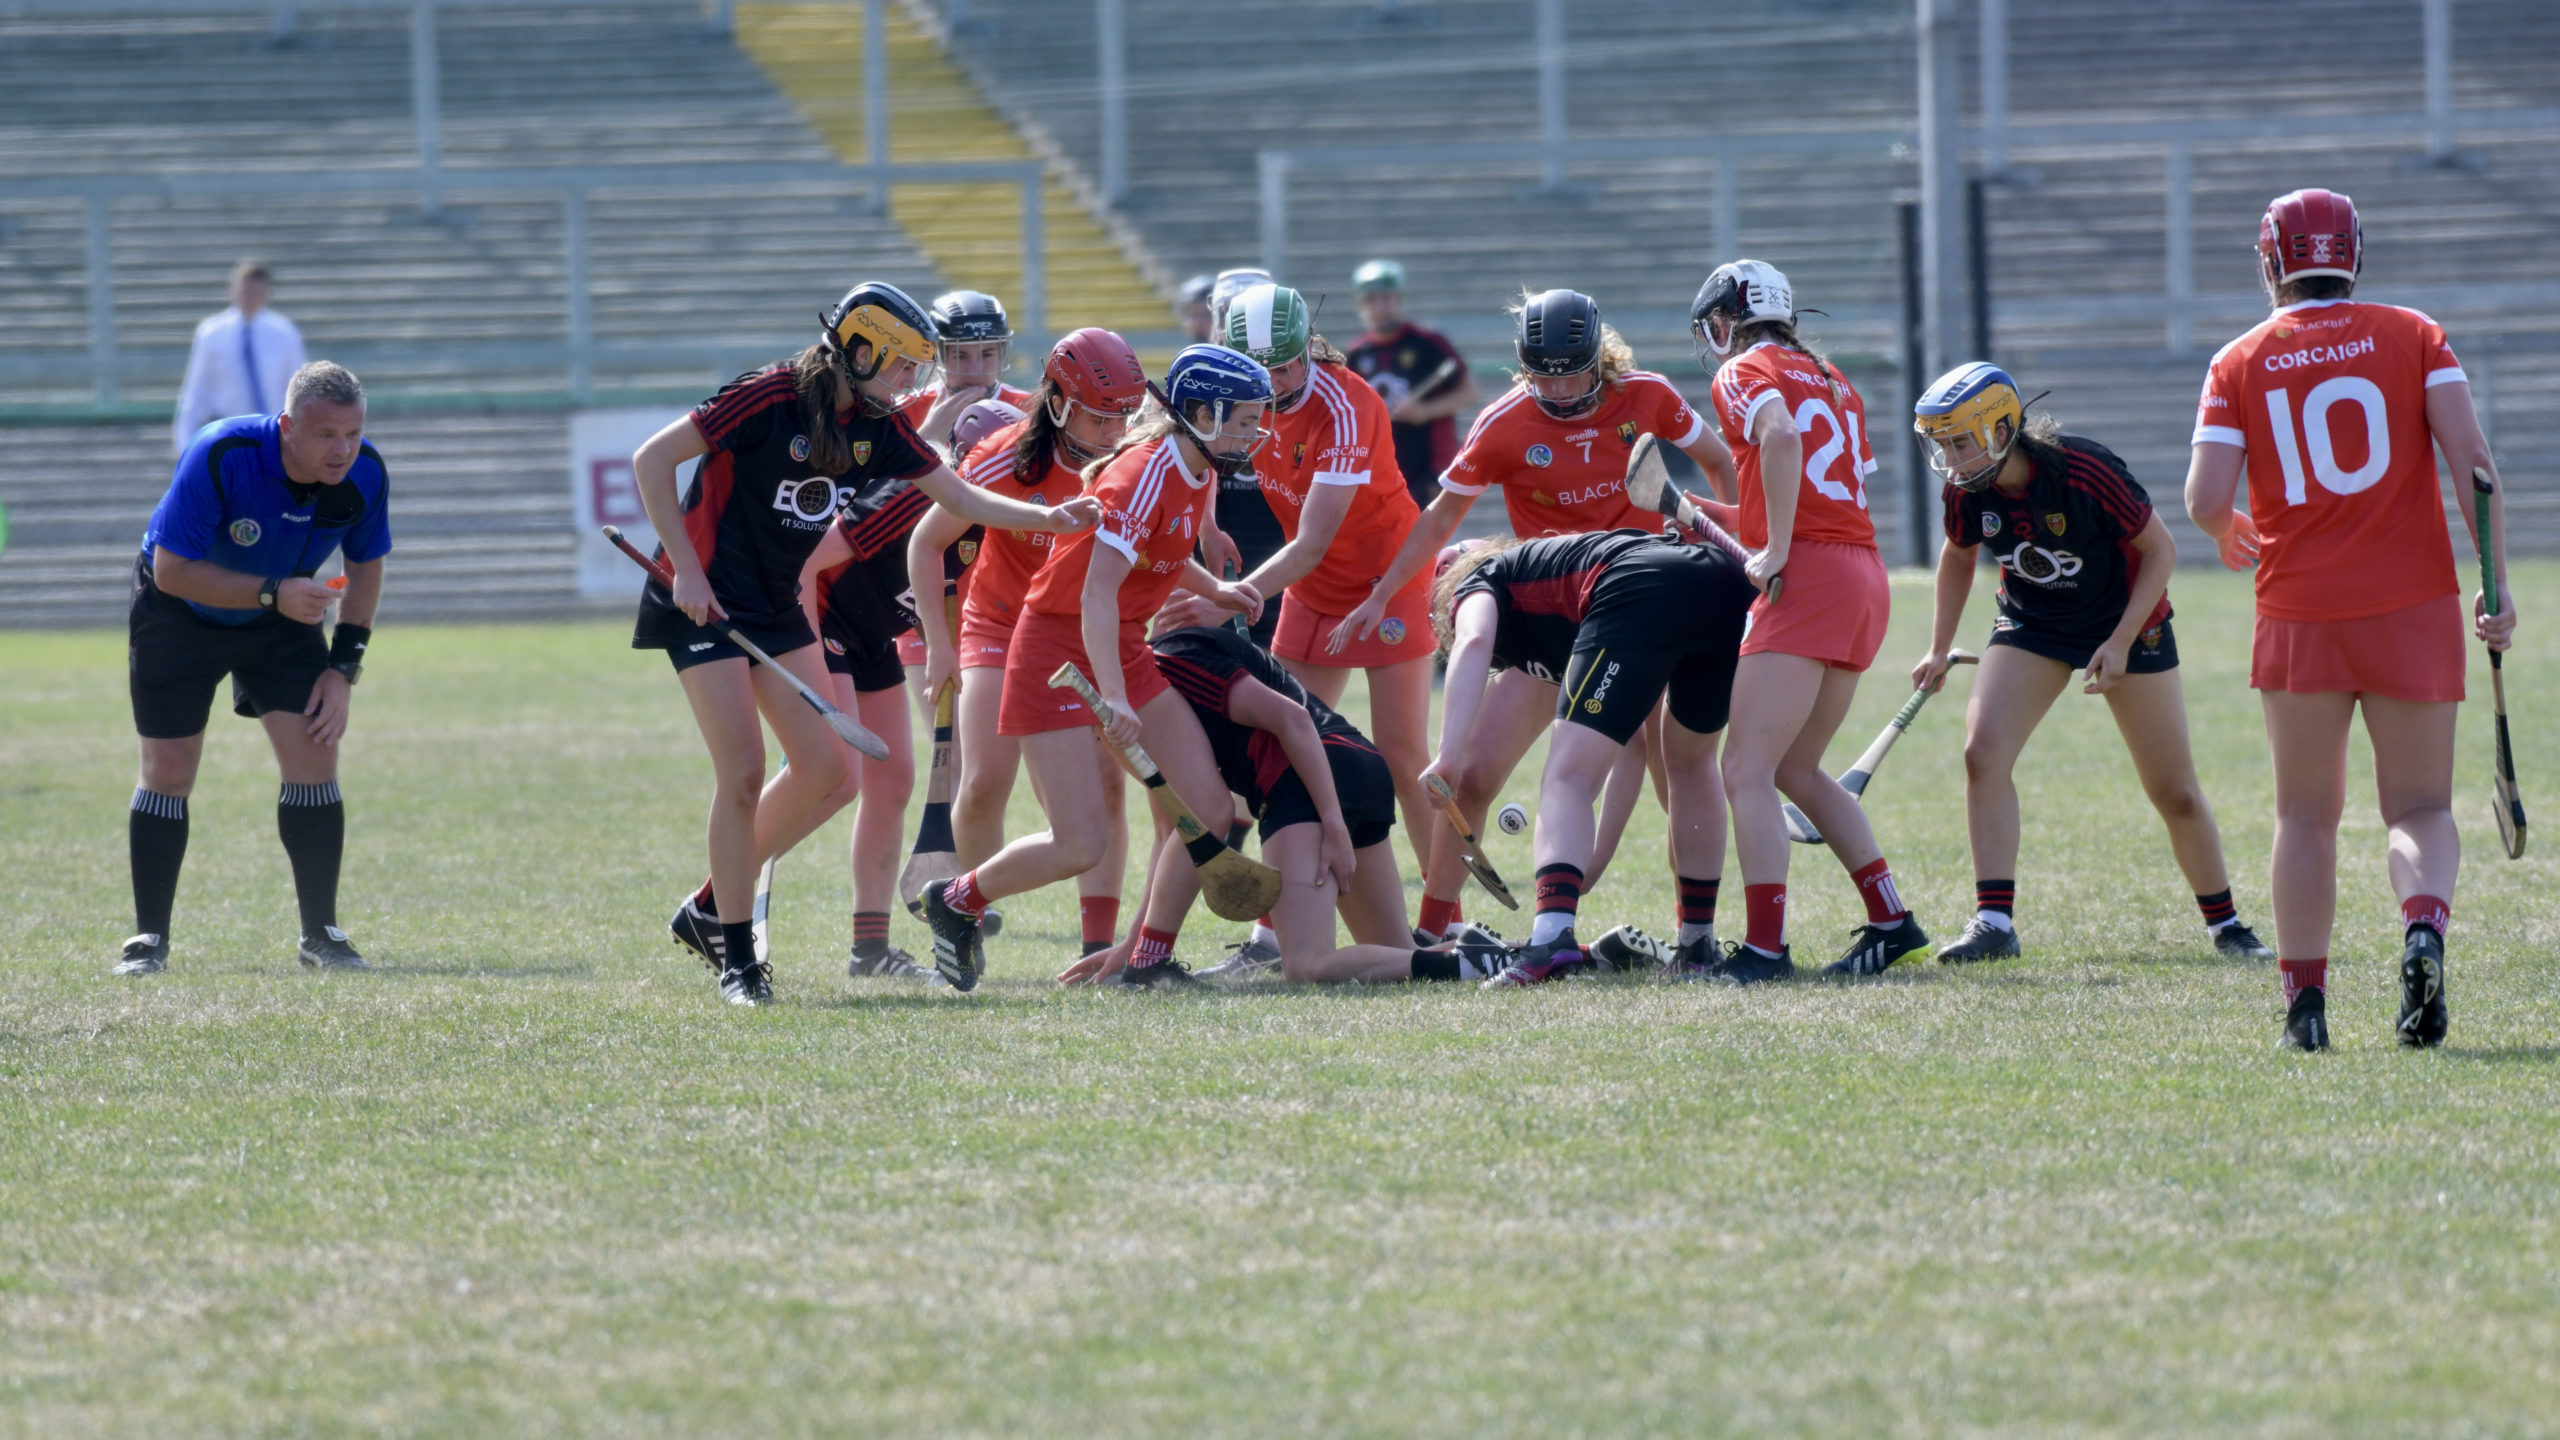 Down battled Cork in the blistering sun as supporters enjoyed the spectacle